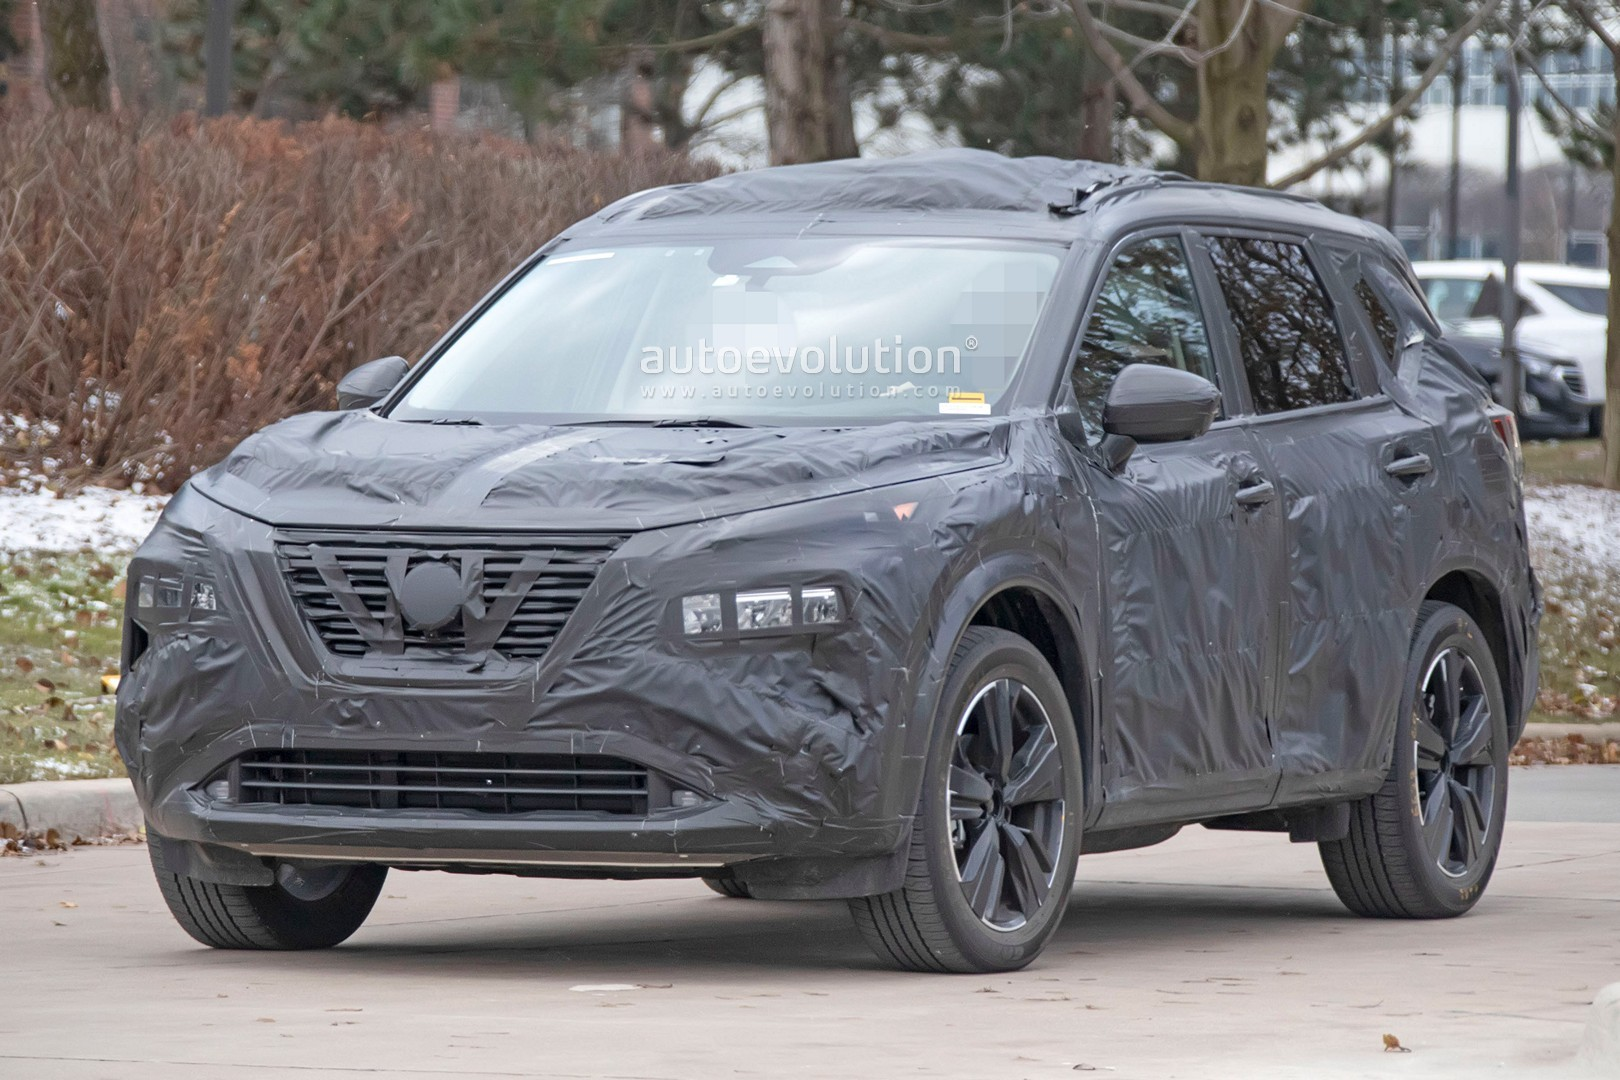 2021 nissan rogue design leaked thanks to patent images